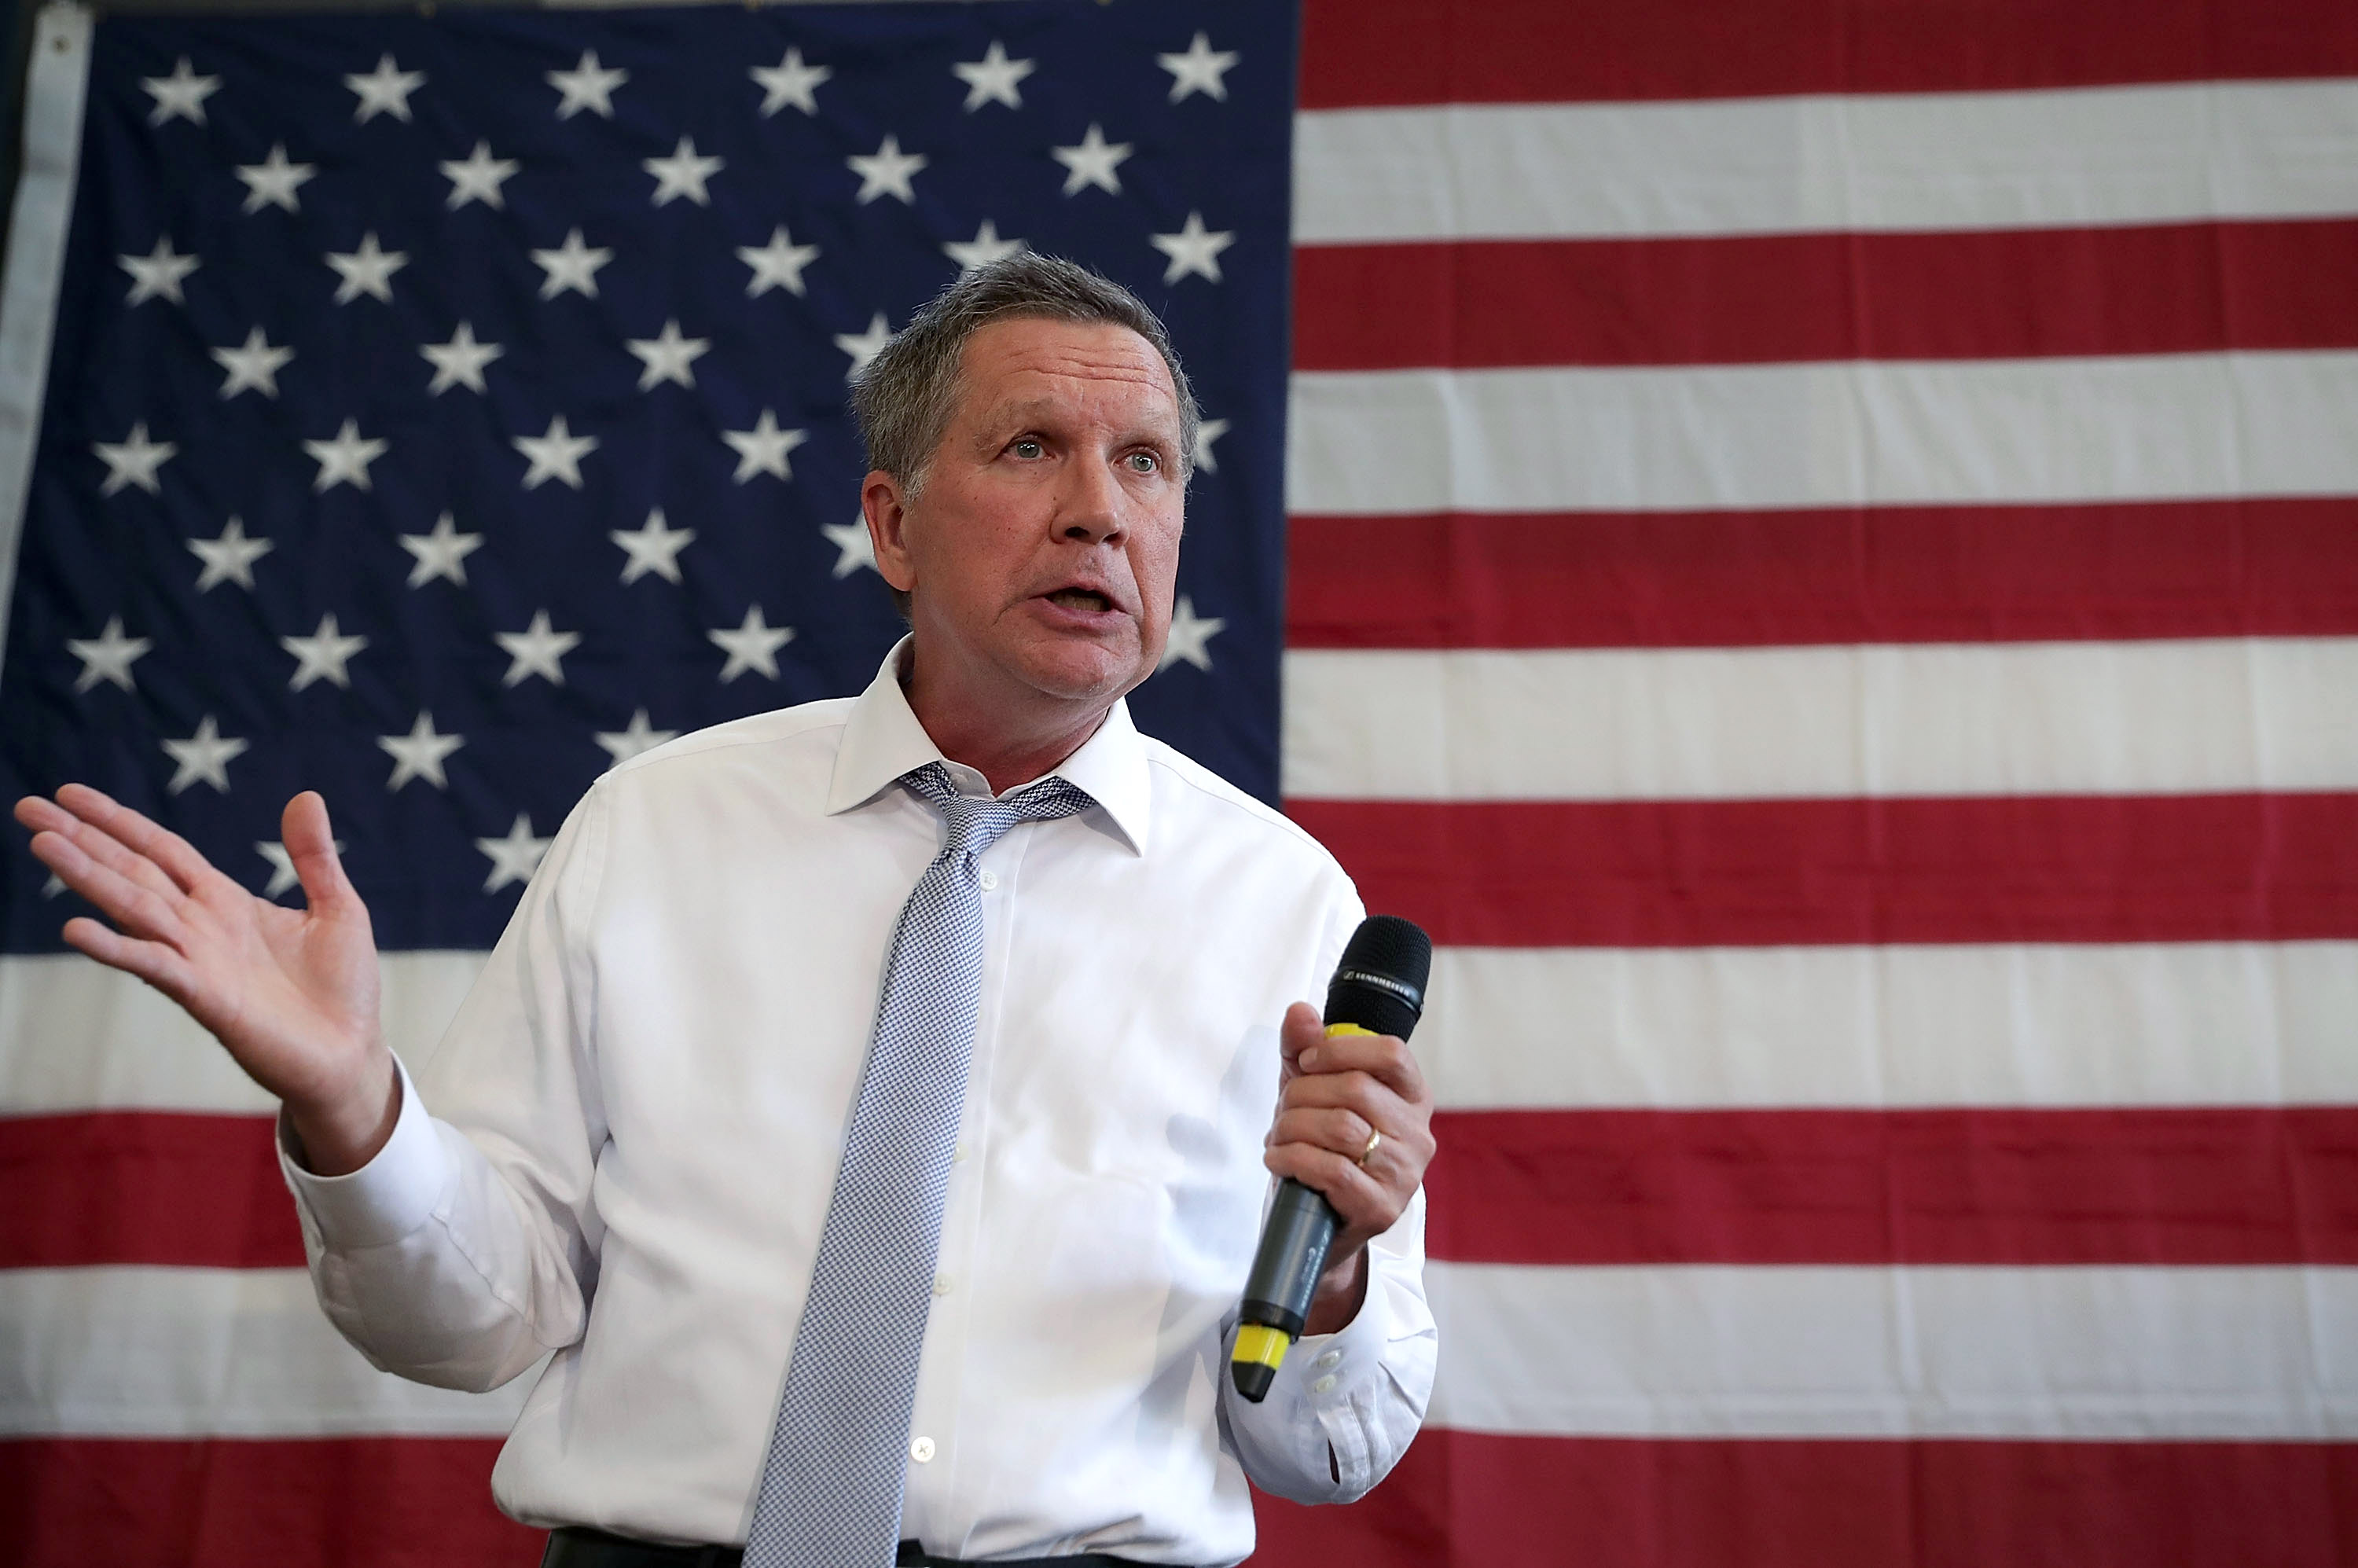 Republican presidential candidate and Ohio Governor John Kasich speaks during a campaign event April 25, 2016 in Rockville, Maryland.